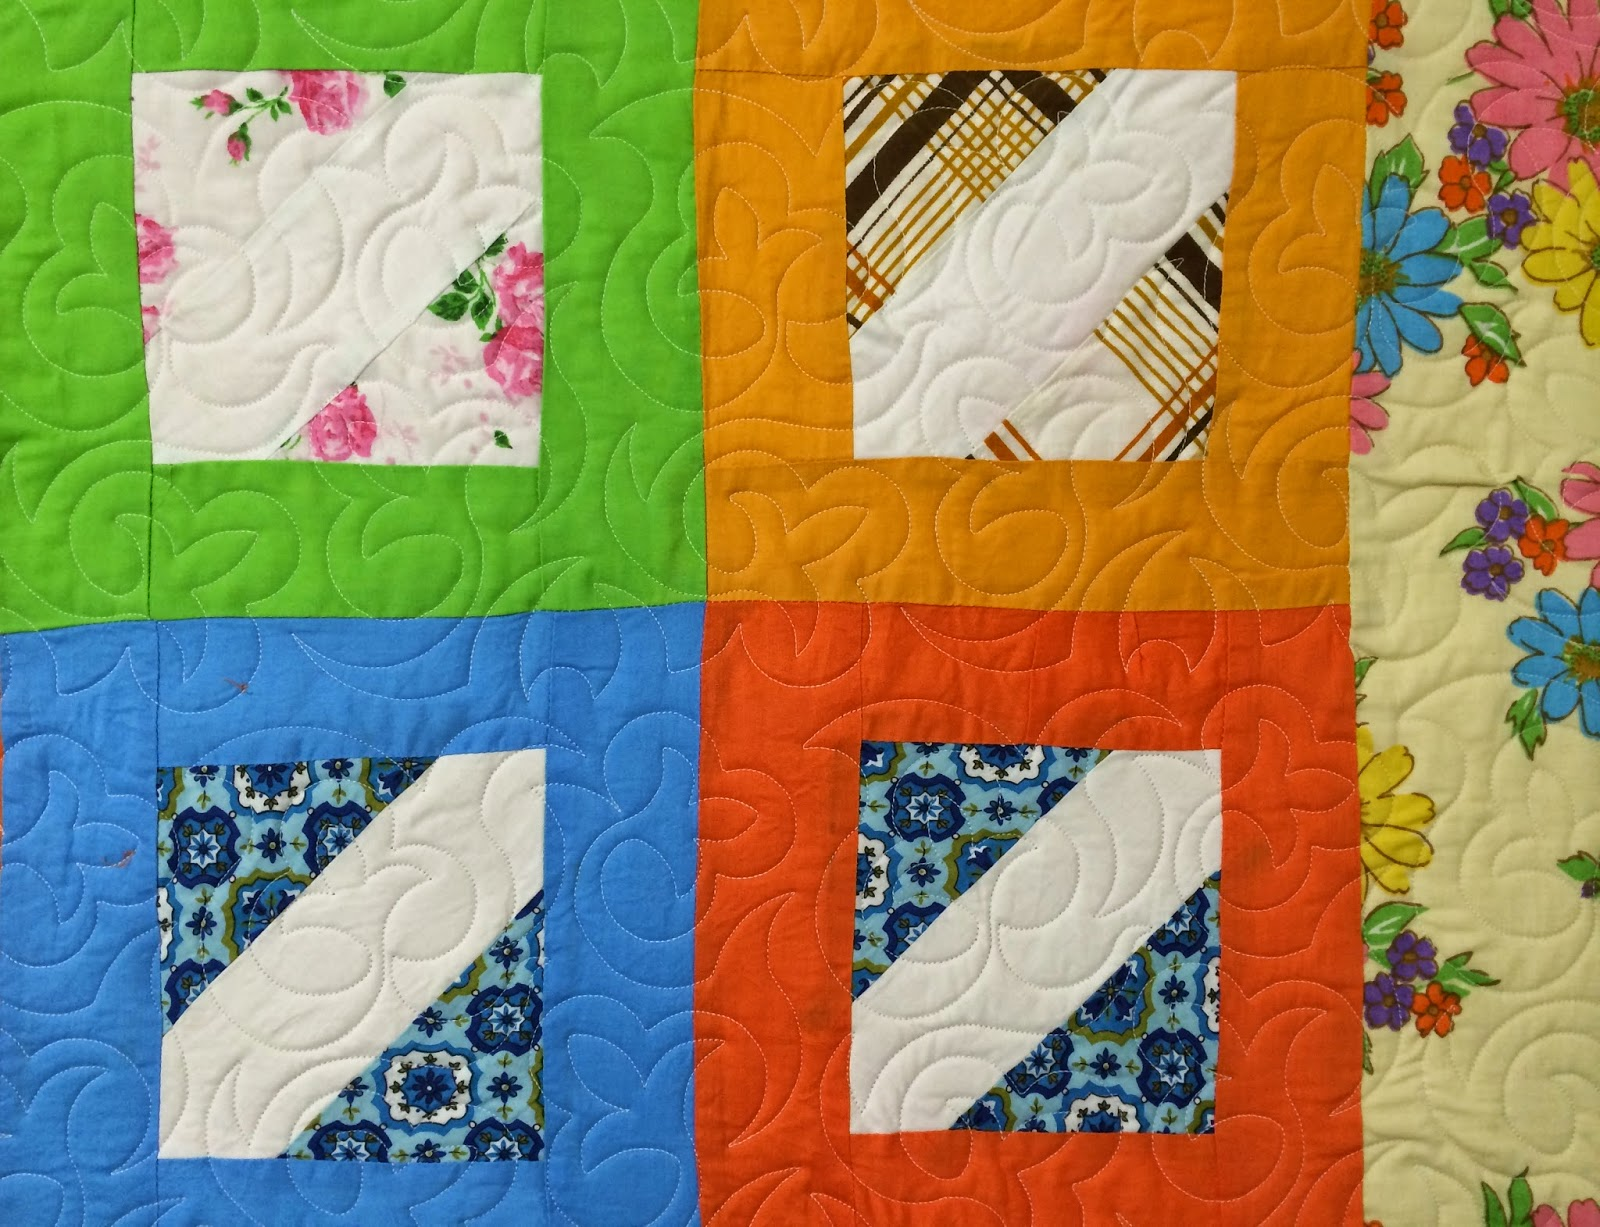 Sharon Lowther's 2 Inch Blocks in Red Quilt